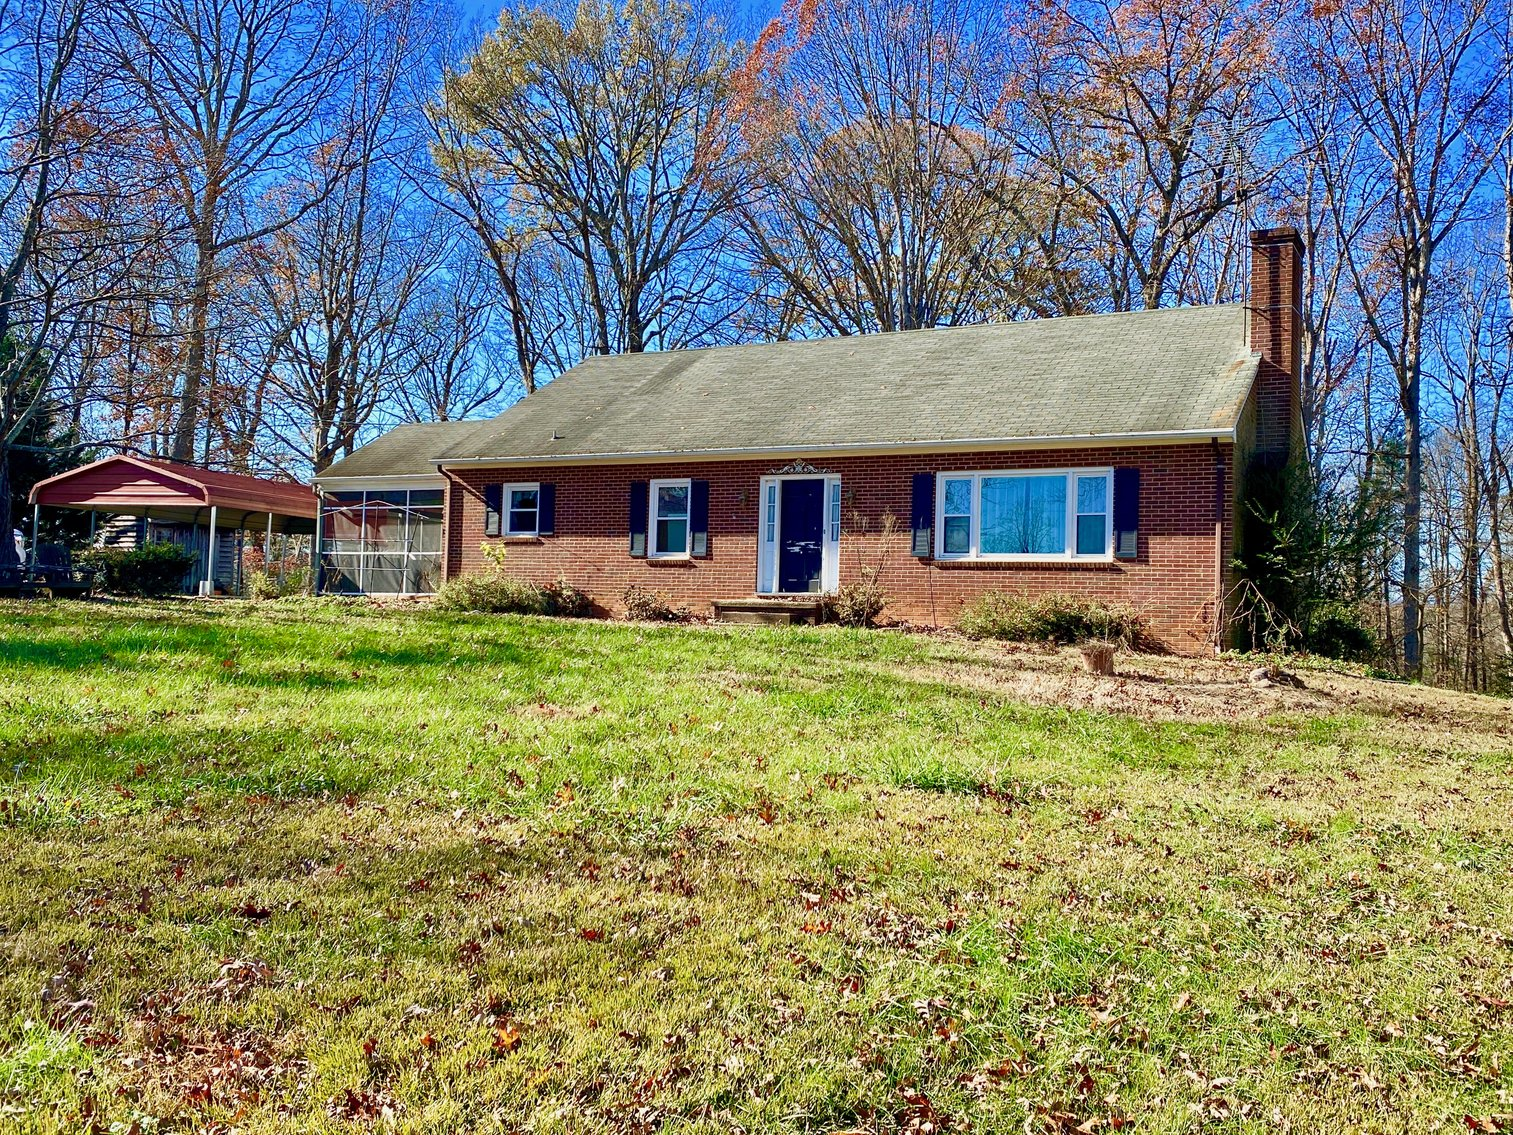 Image for 3 BR/3 BA Brick Home w/Walk-Out Basement on 1.6 +/- Acres in Charlottesville, VA--SELLING to the HIGHEST BIDDER!!